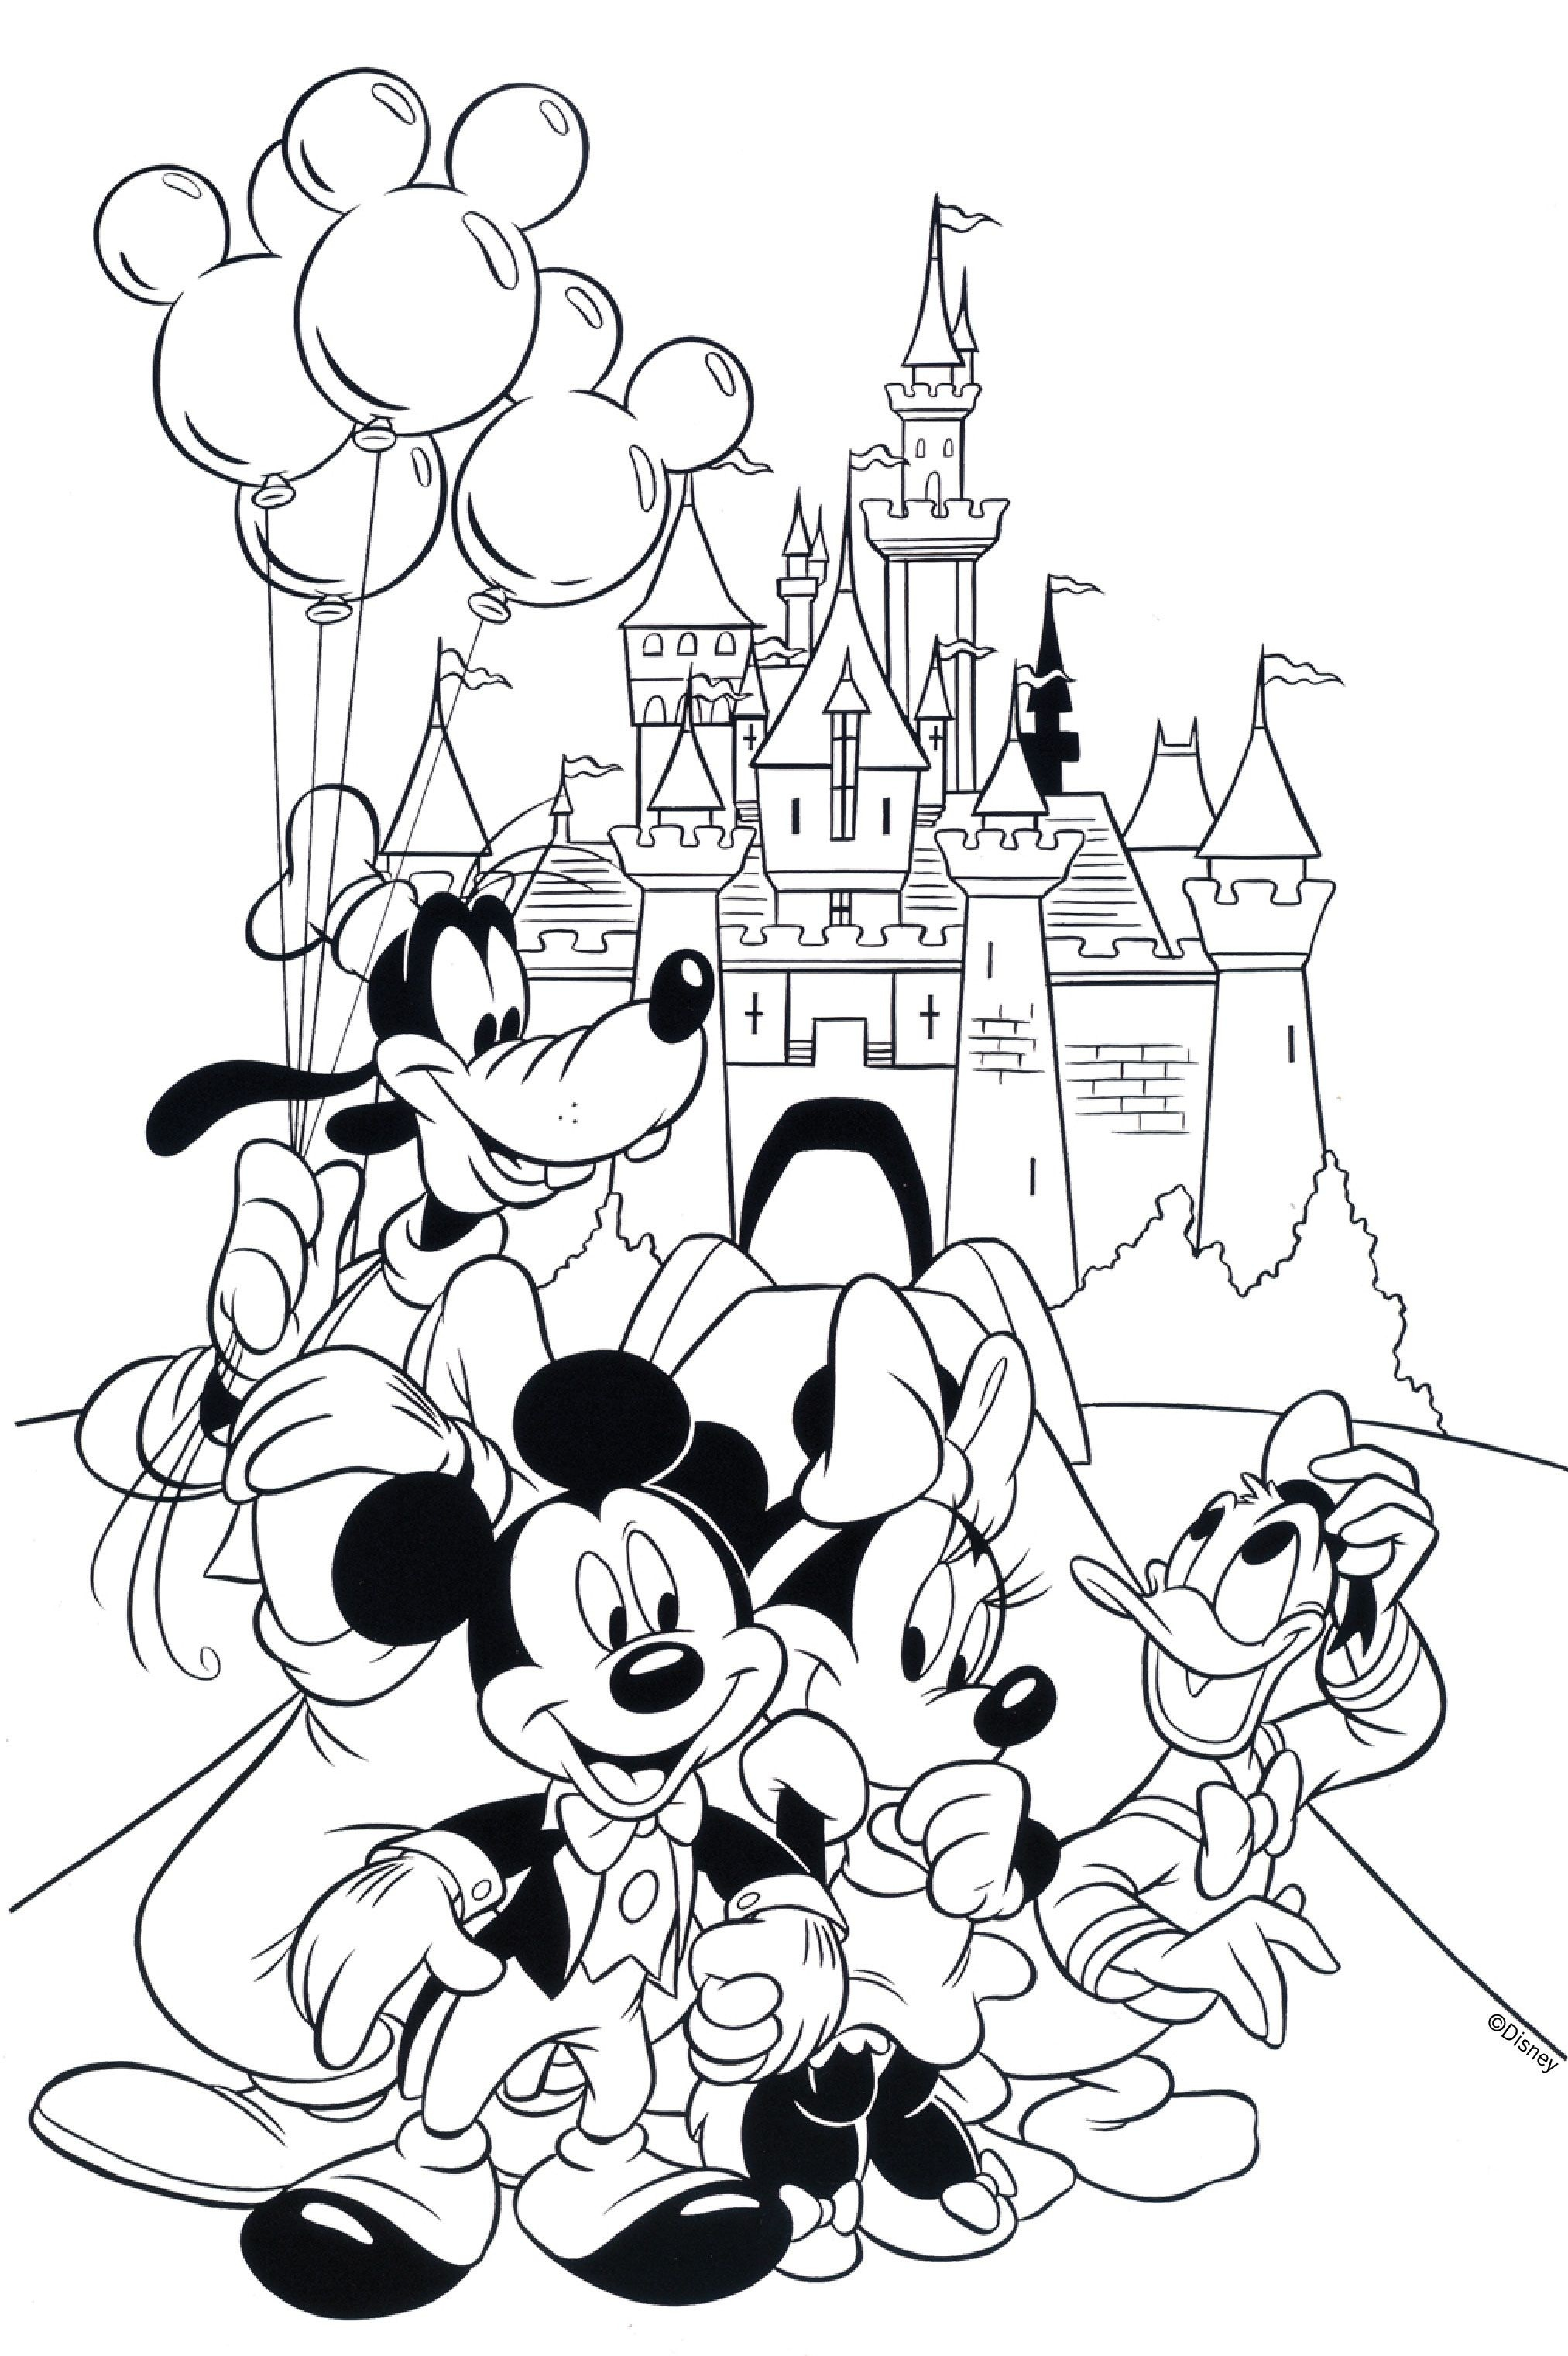 Free Disney Coloring Pages | Coloring Books | Coloring Pages, Free - Free Printable Disney Coloring Pages